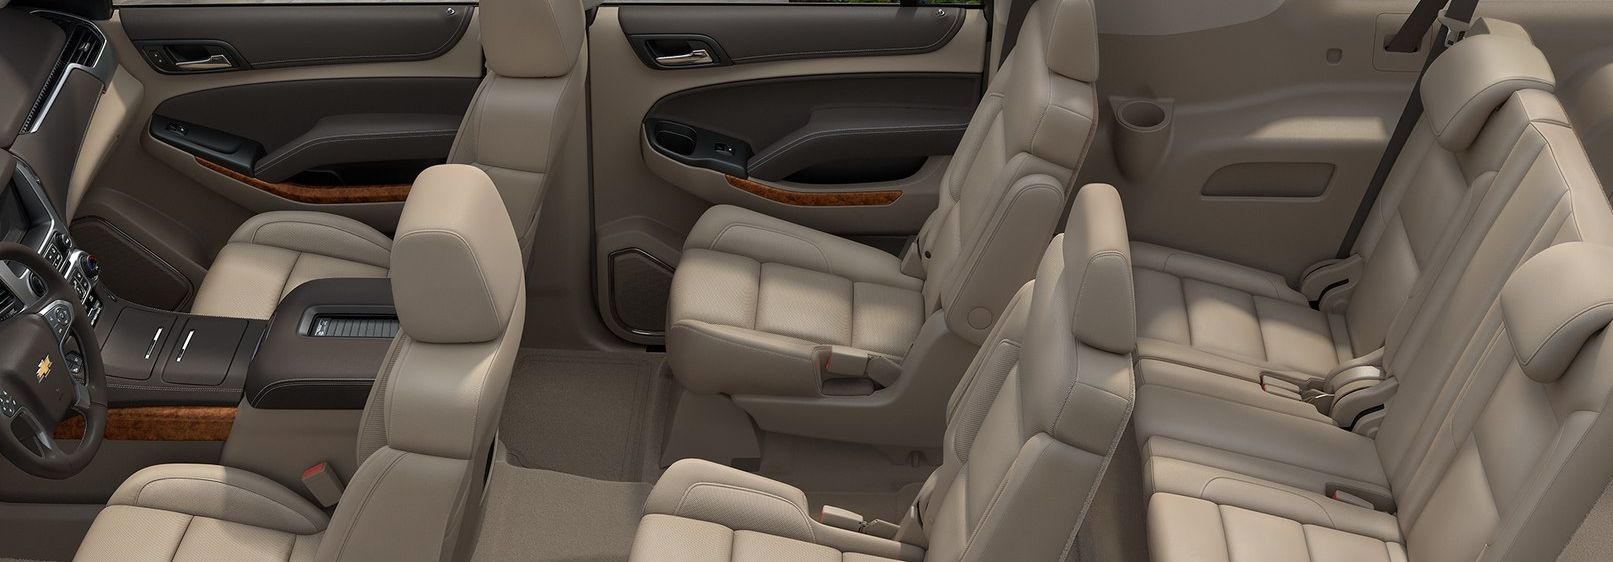 Generous Accommodations in the 2019 Suburban